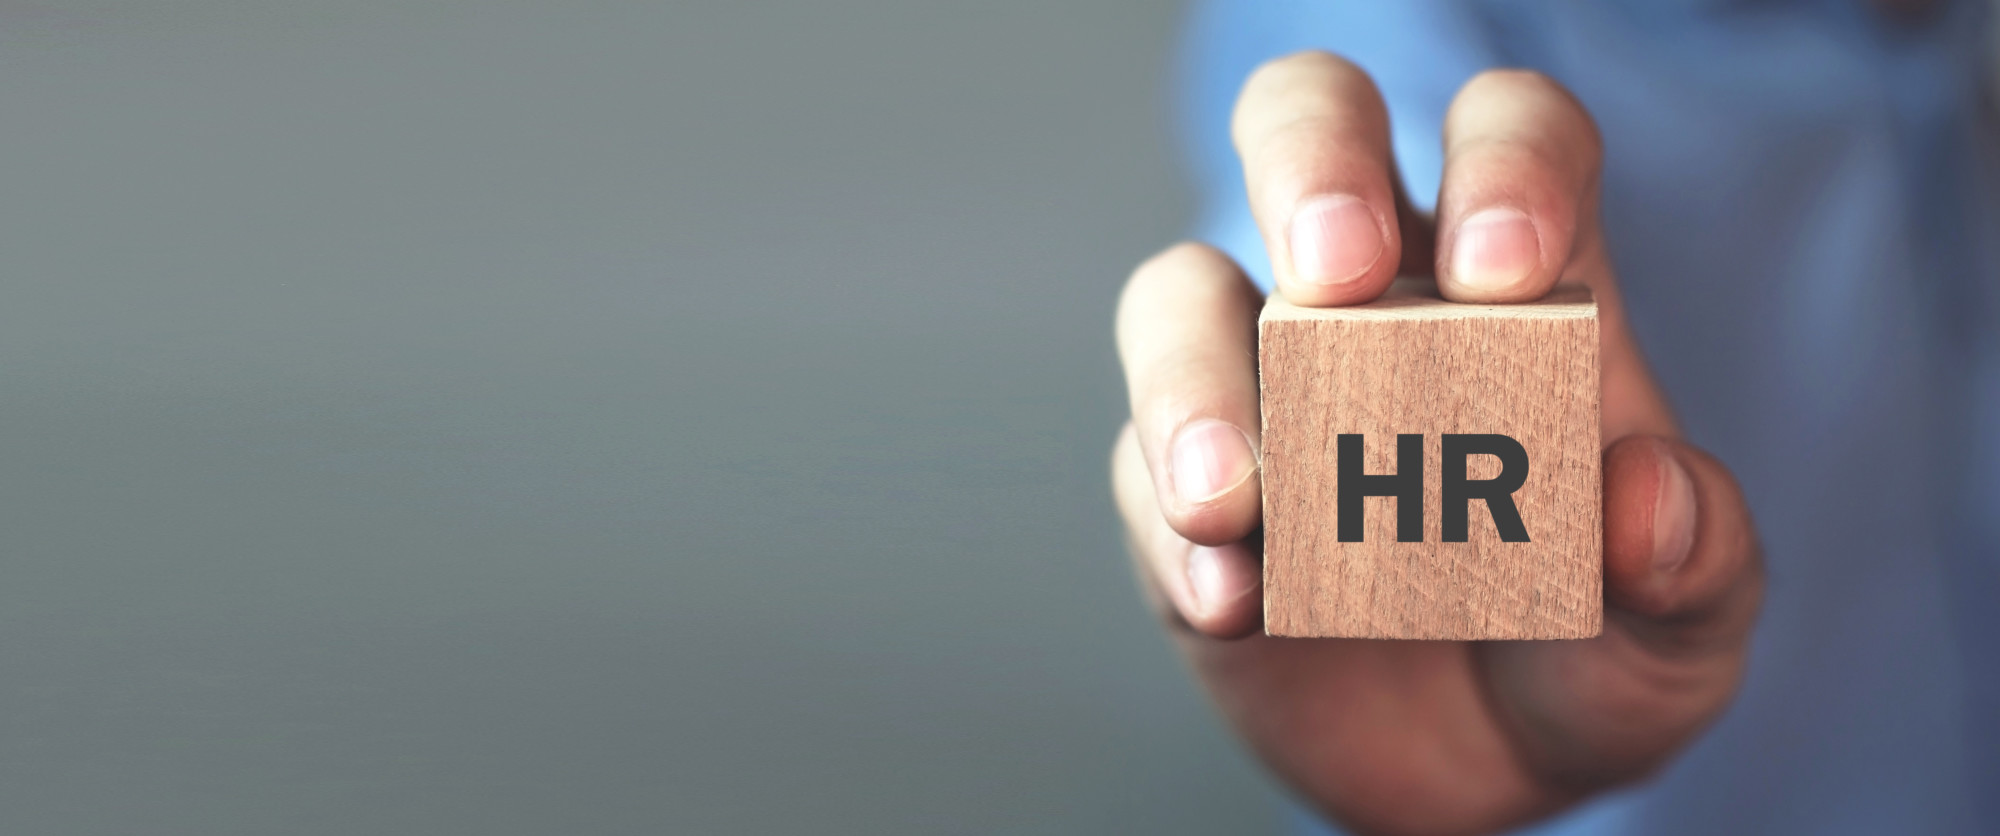 5 Fantastic Reasons to Outsource HR Functions